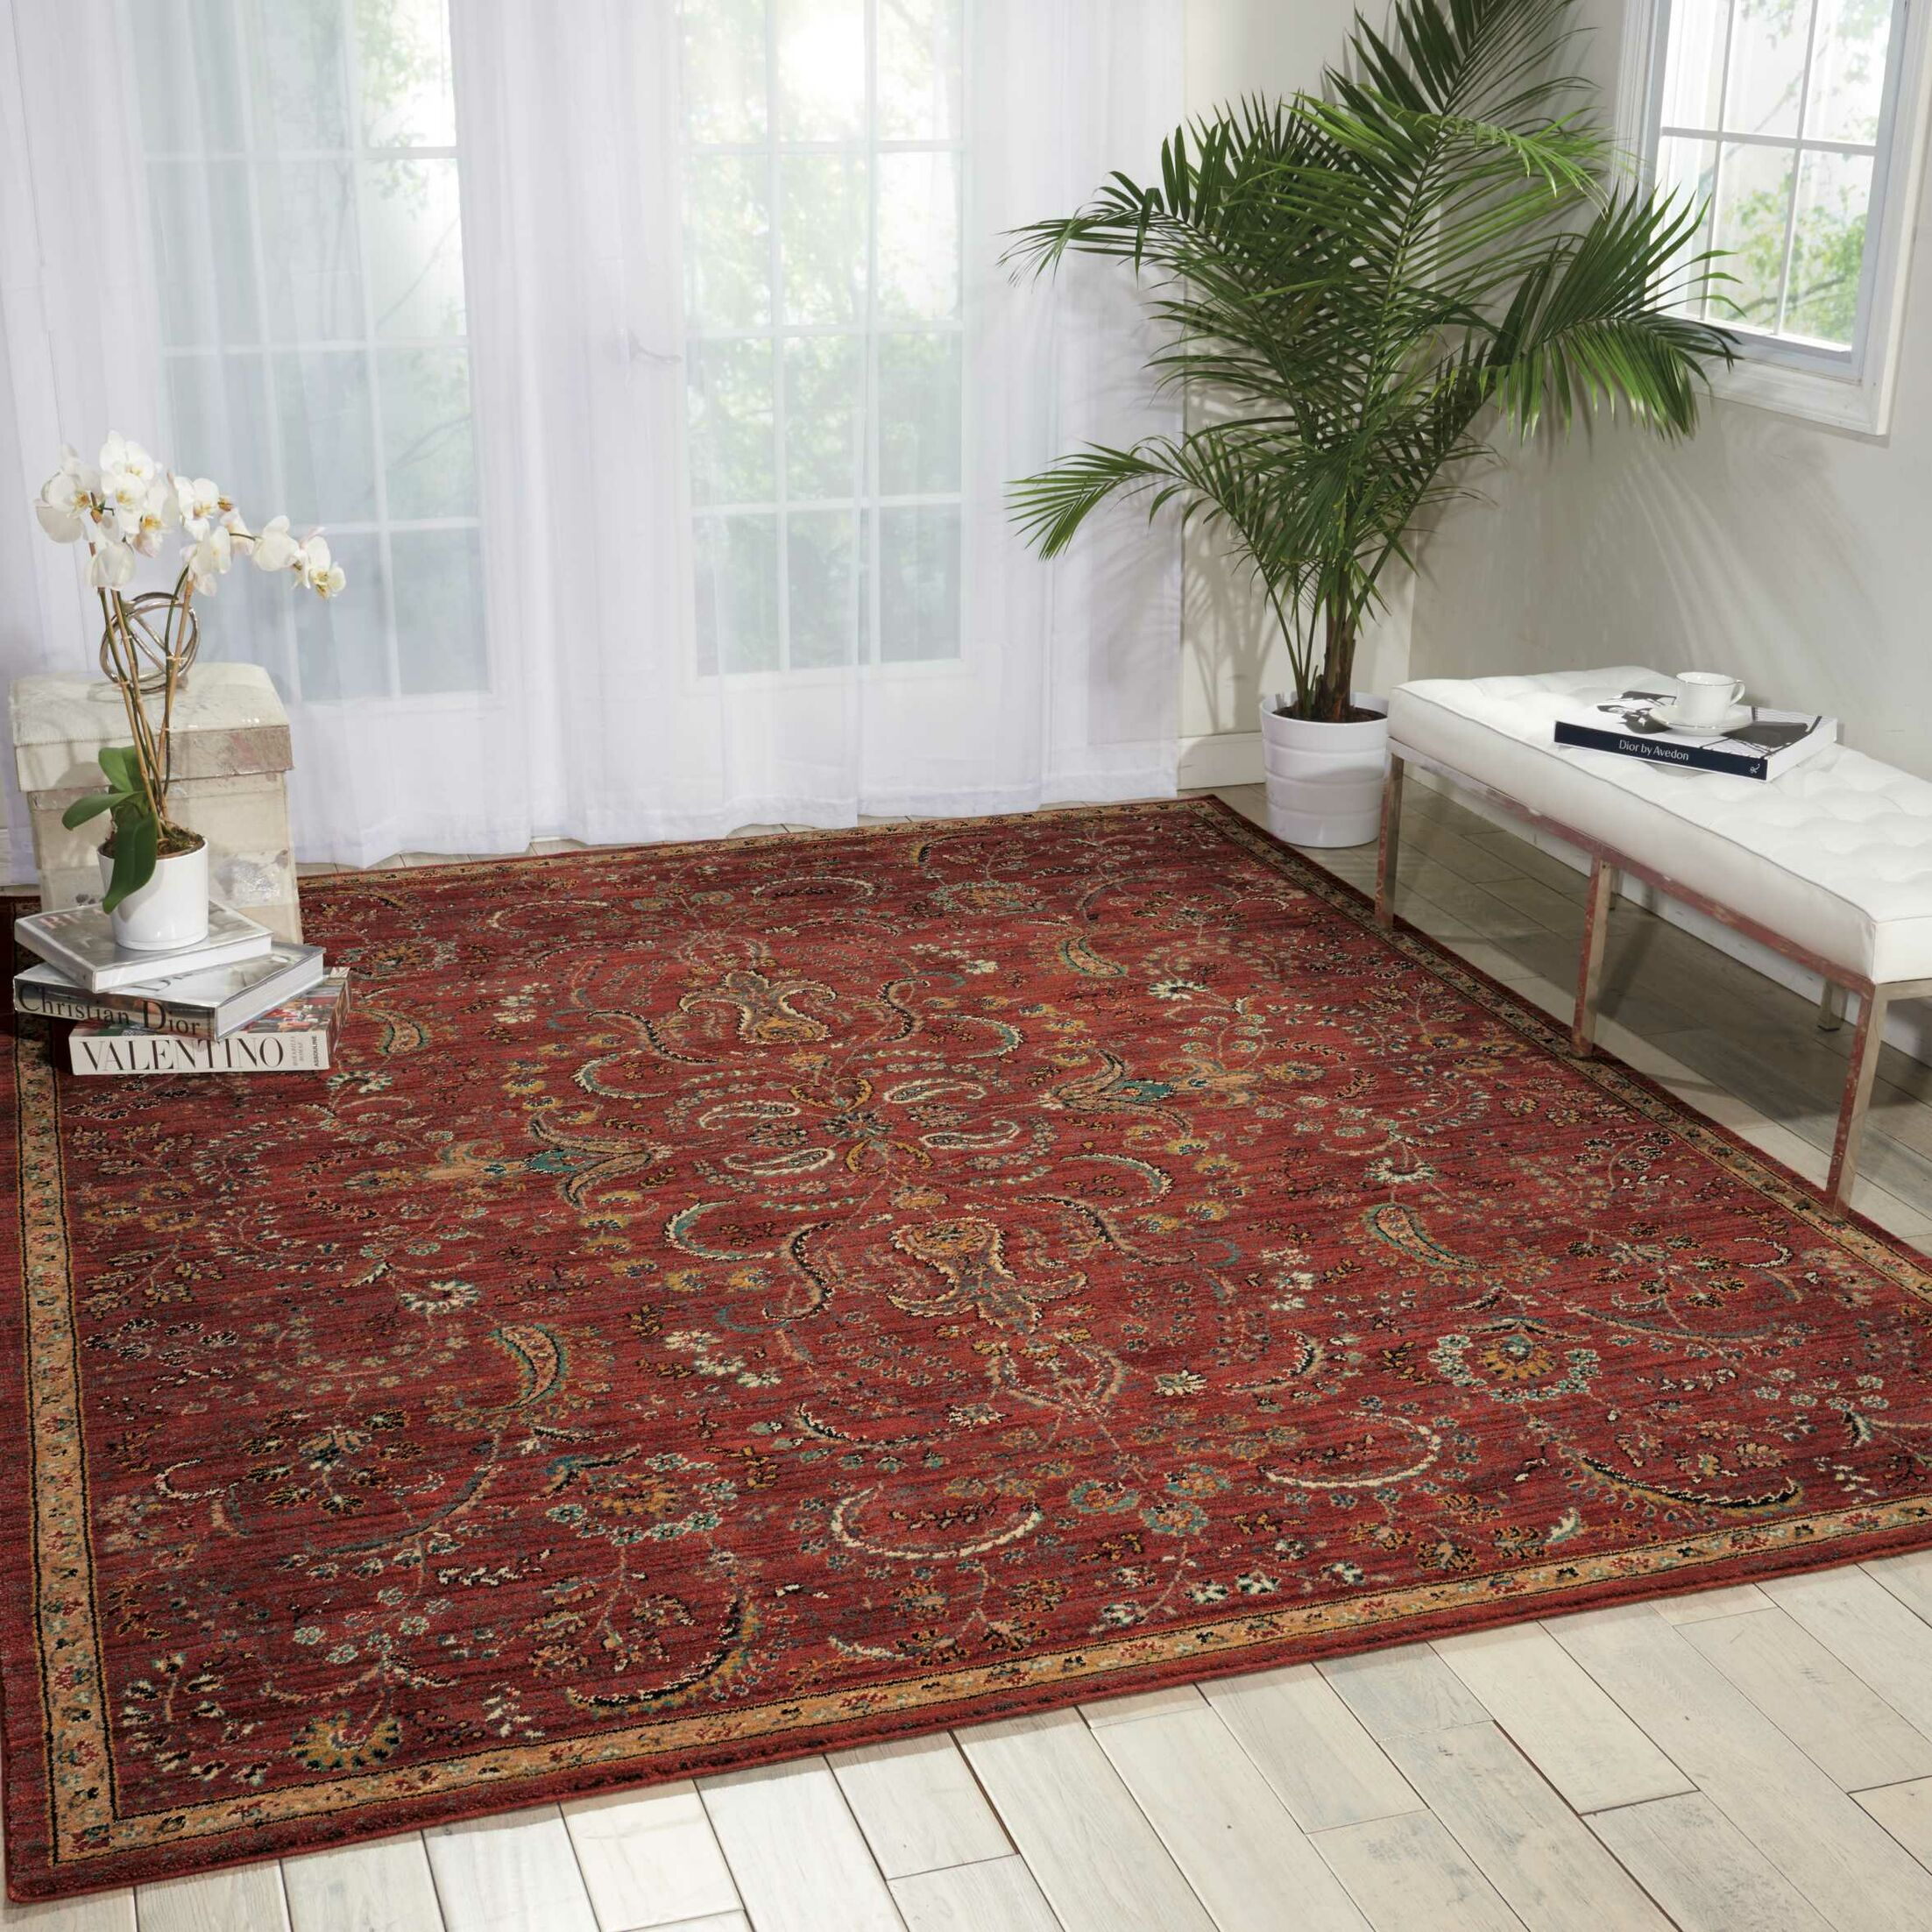 Mainville Red Area Rug Rug Size: Rectangle 6'6